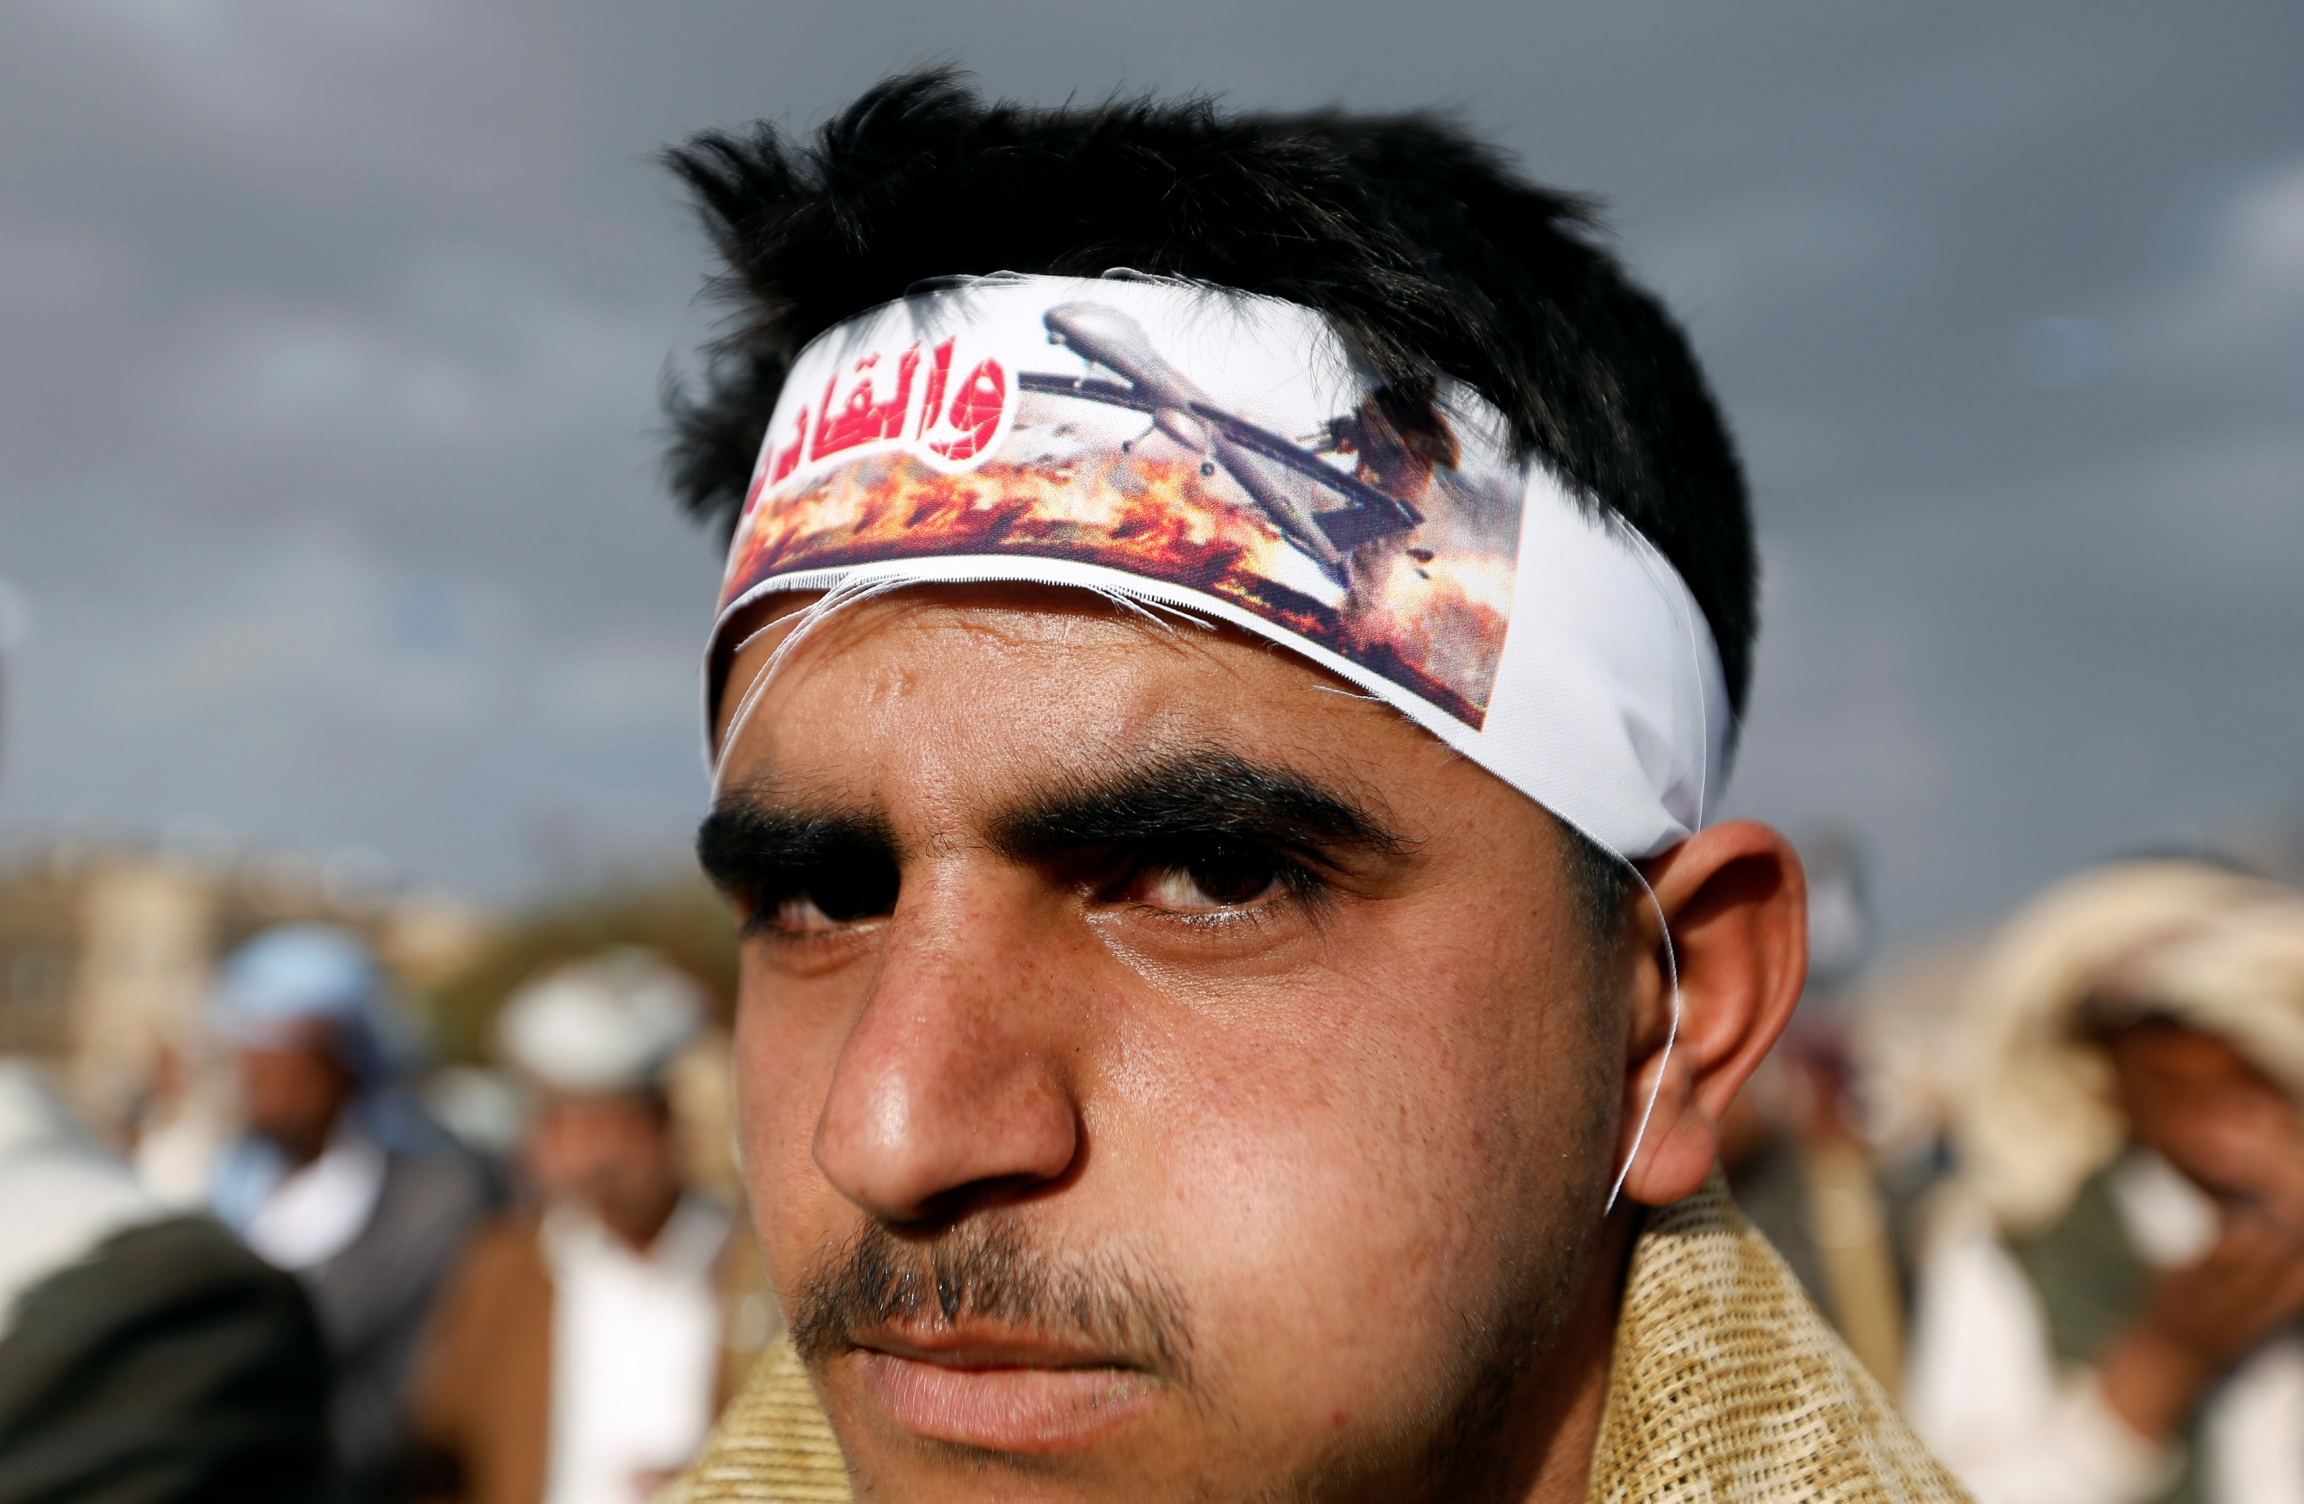 Young man wears headband showing image of drone attack